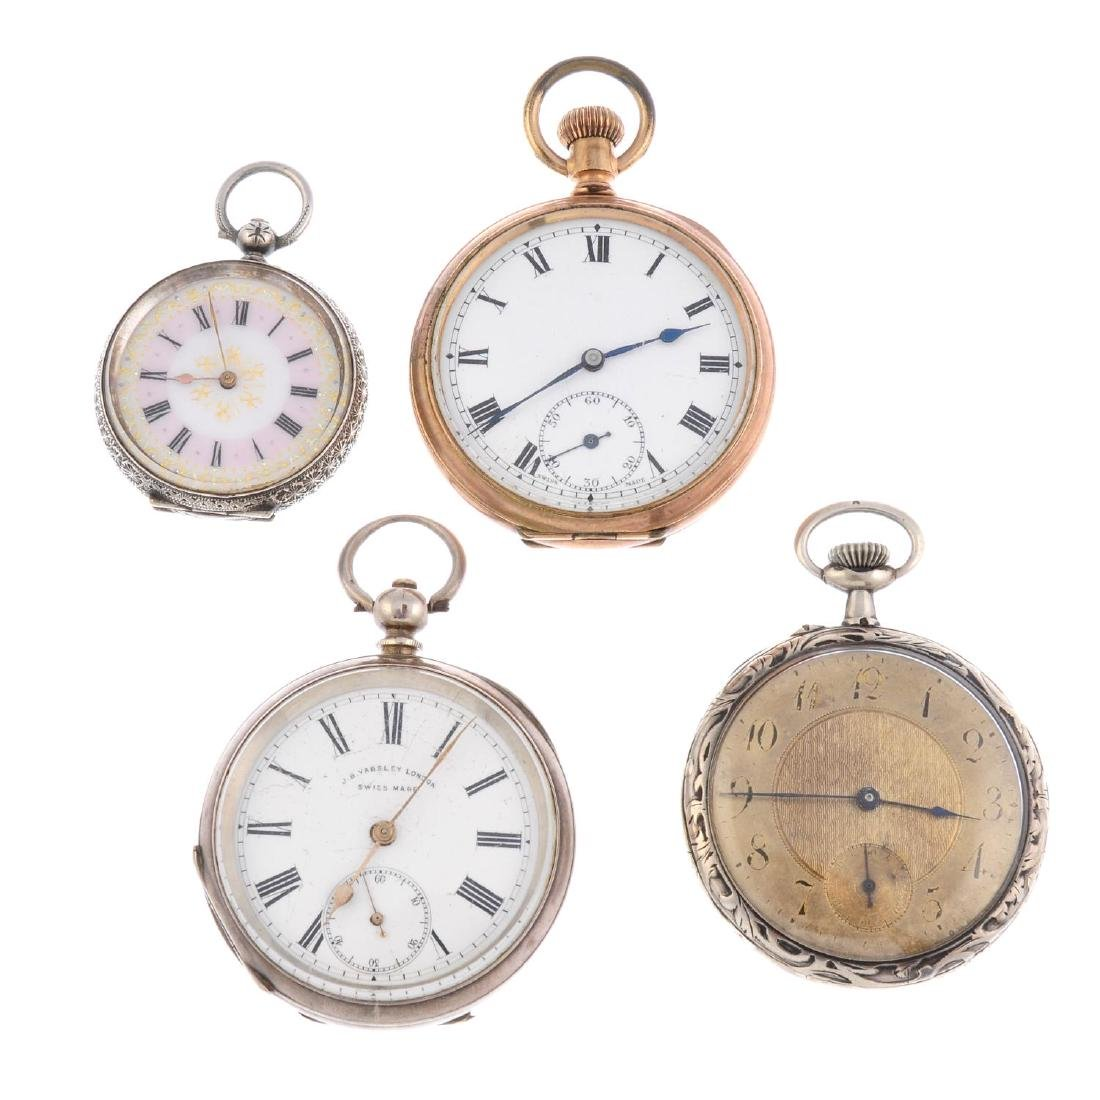 A group of twelve assorted pocket watches, to include